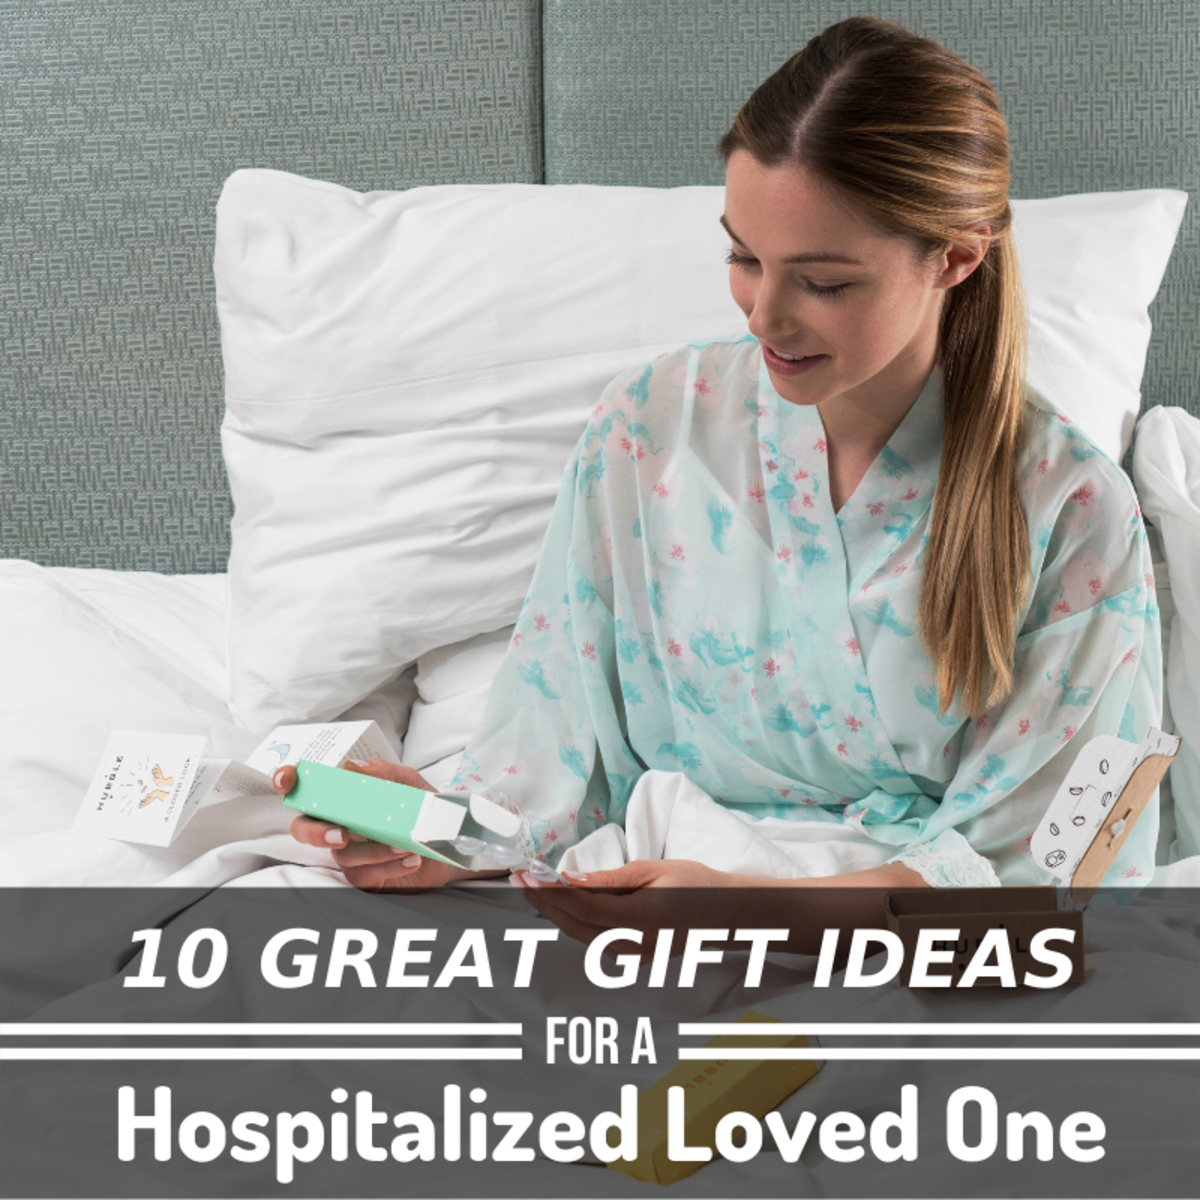 Staying in the hospital can really take a toll on someone. Here are some gift ideas from a practicing nurse to help you cheer them up!